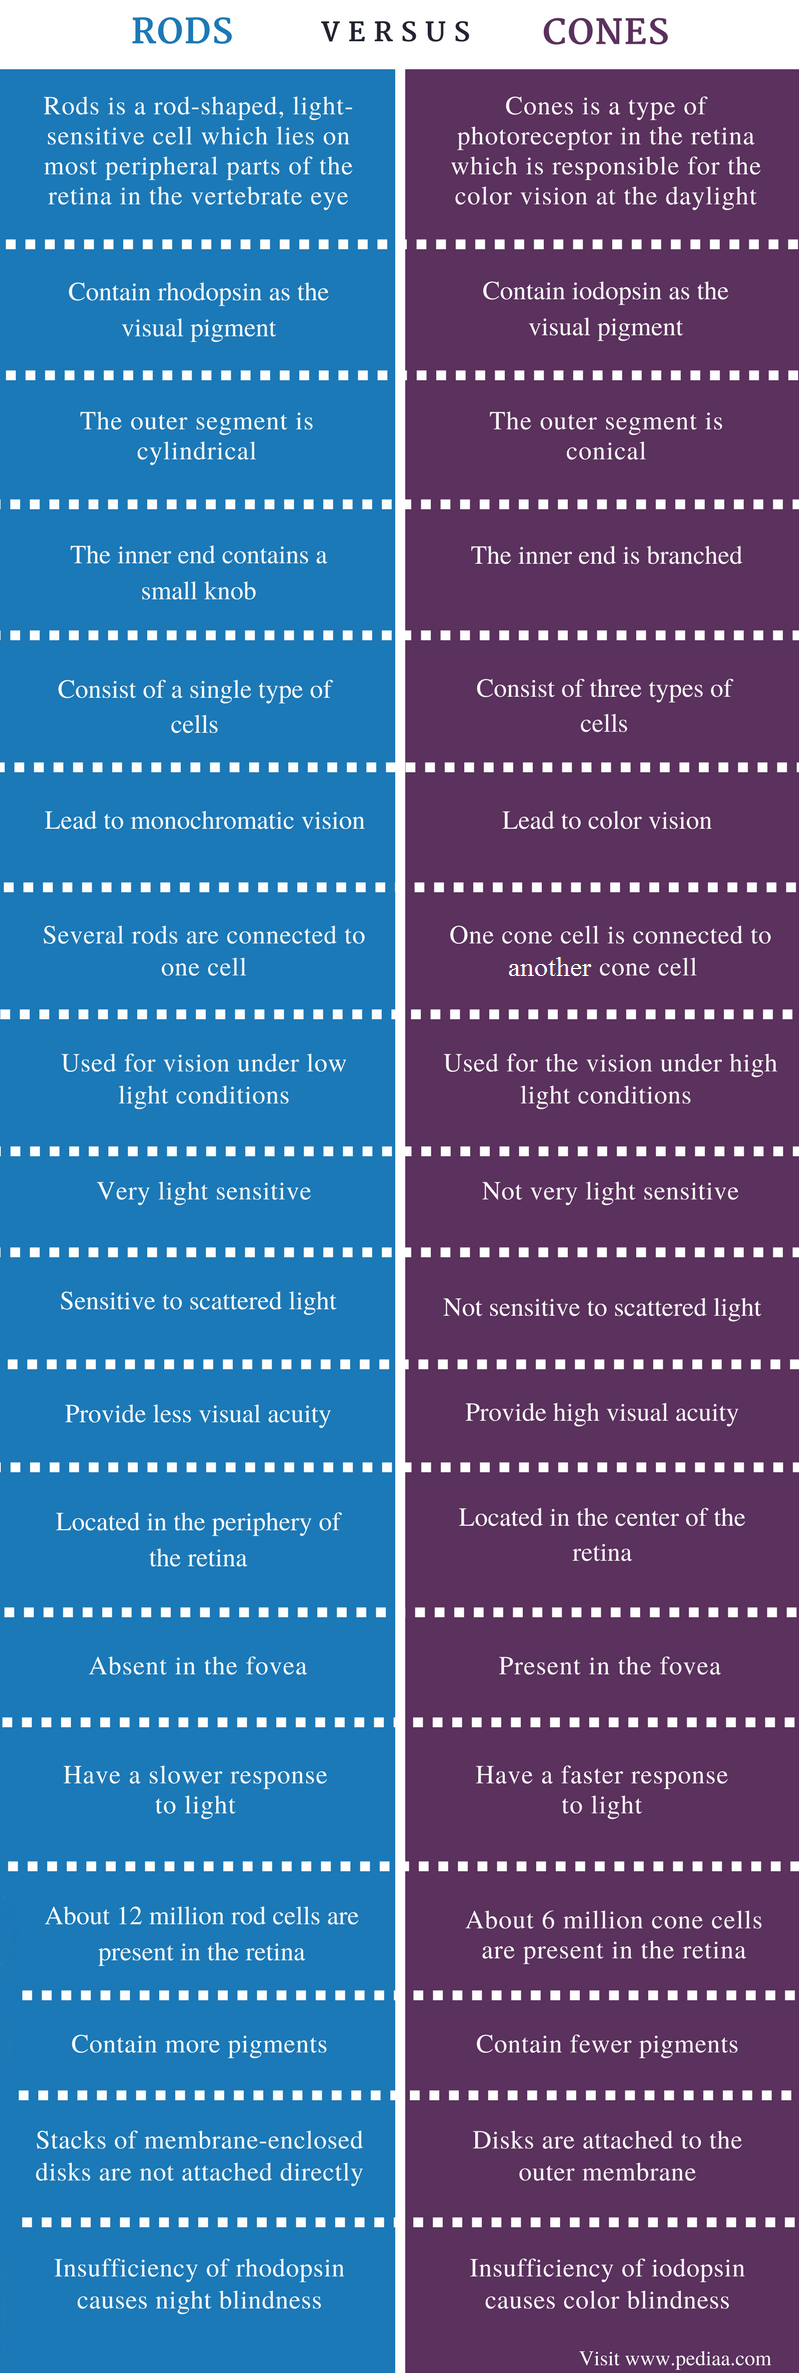 Difference Between Rods and Cones - Comparison Summary